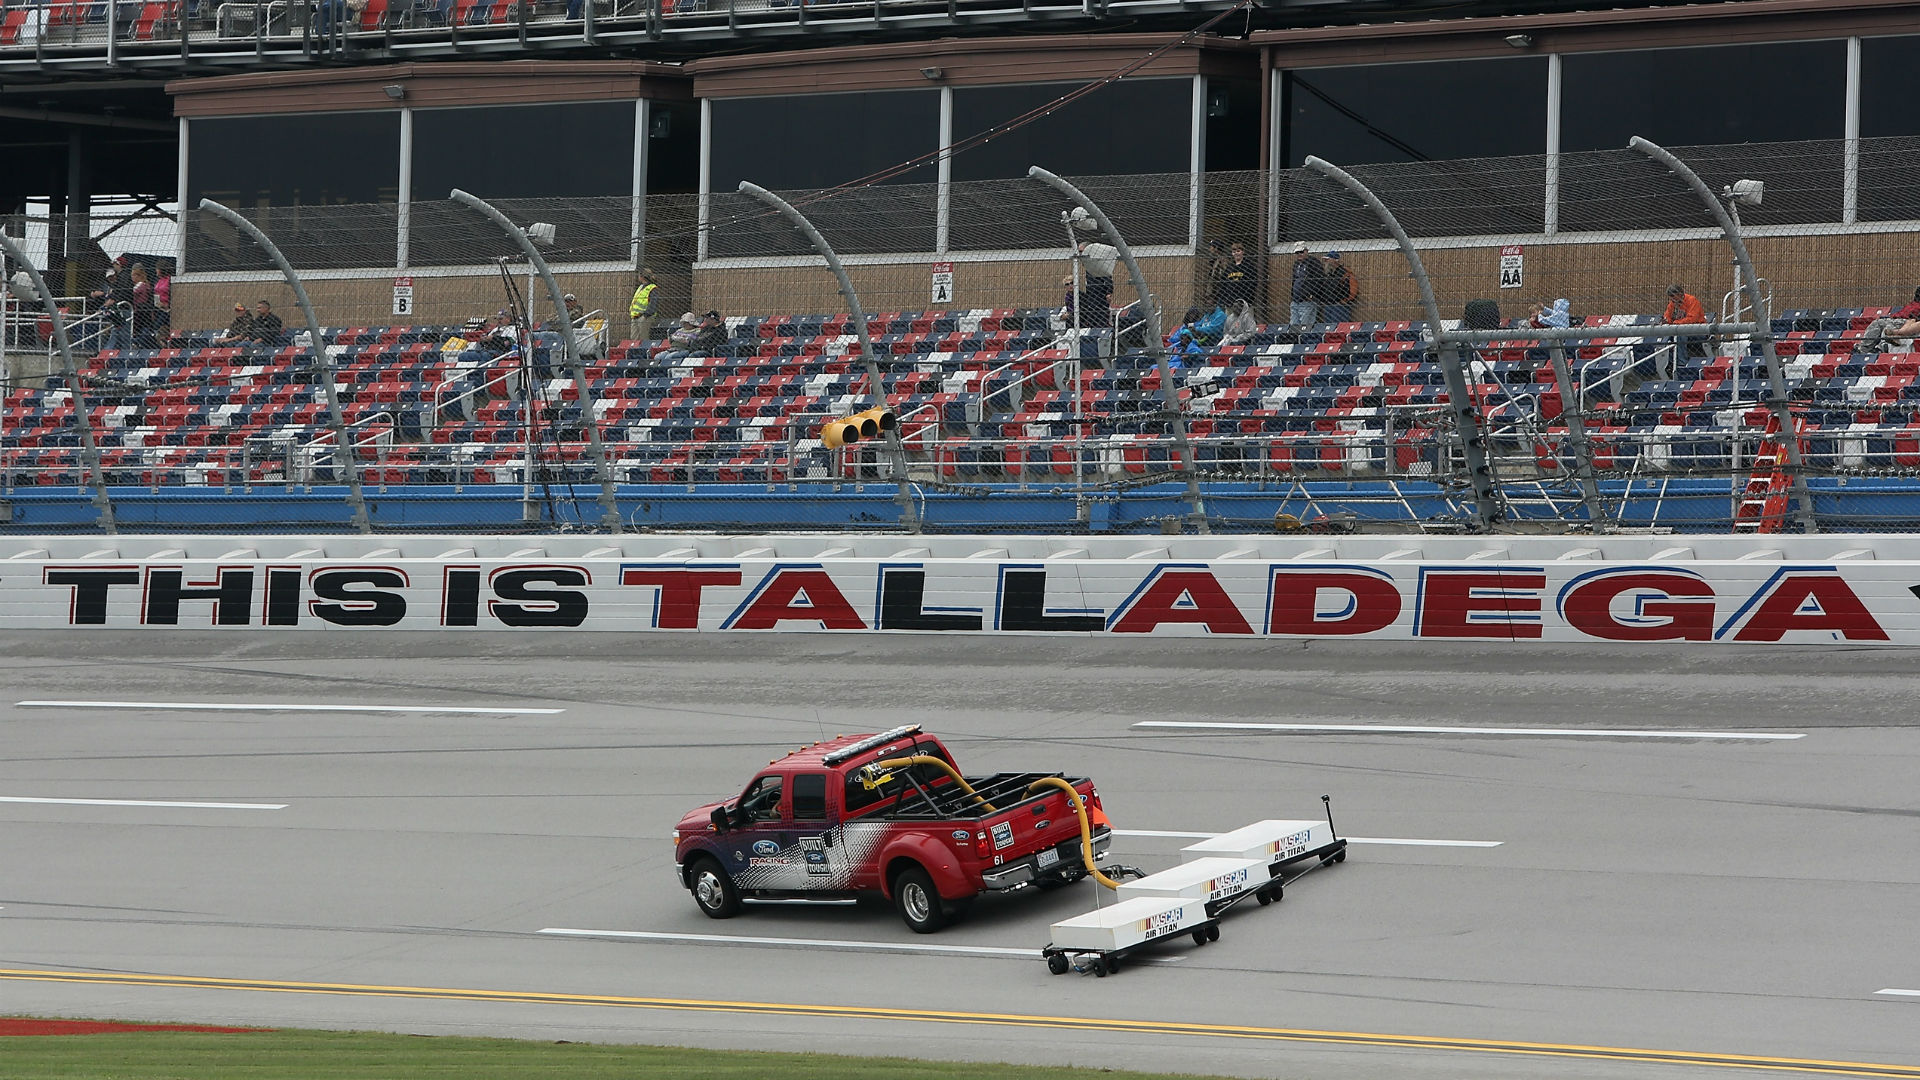 NASCAR race weather: How long will rain in forecast delay the Talladega race?